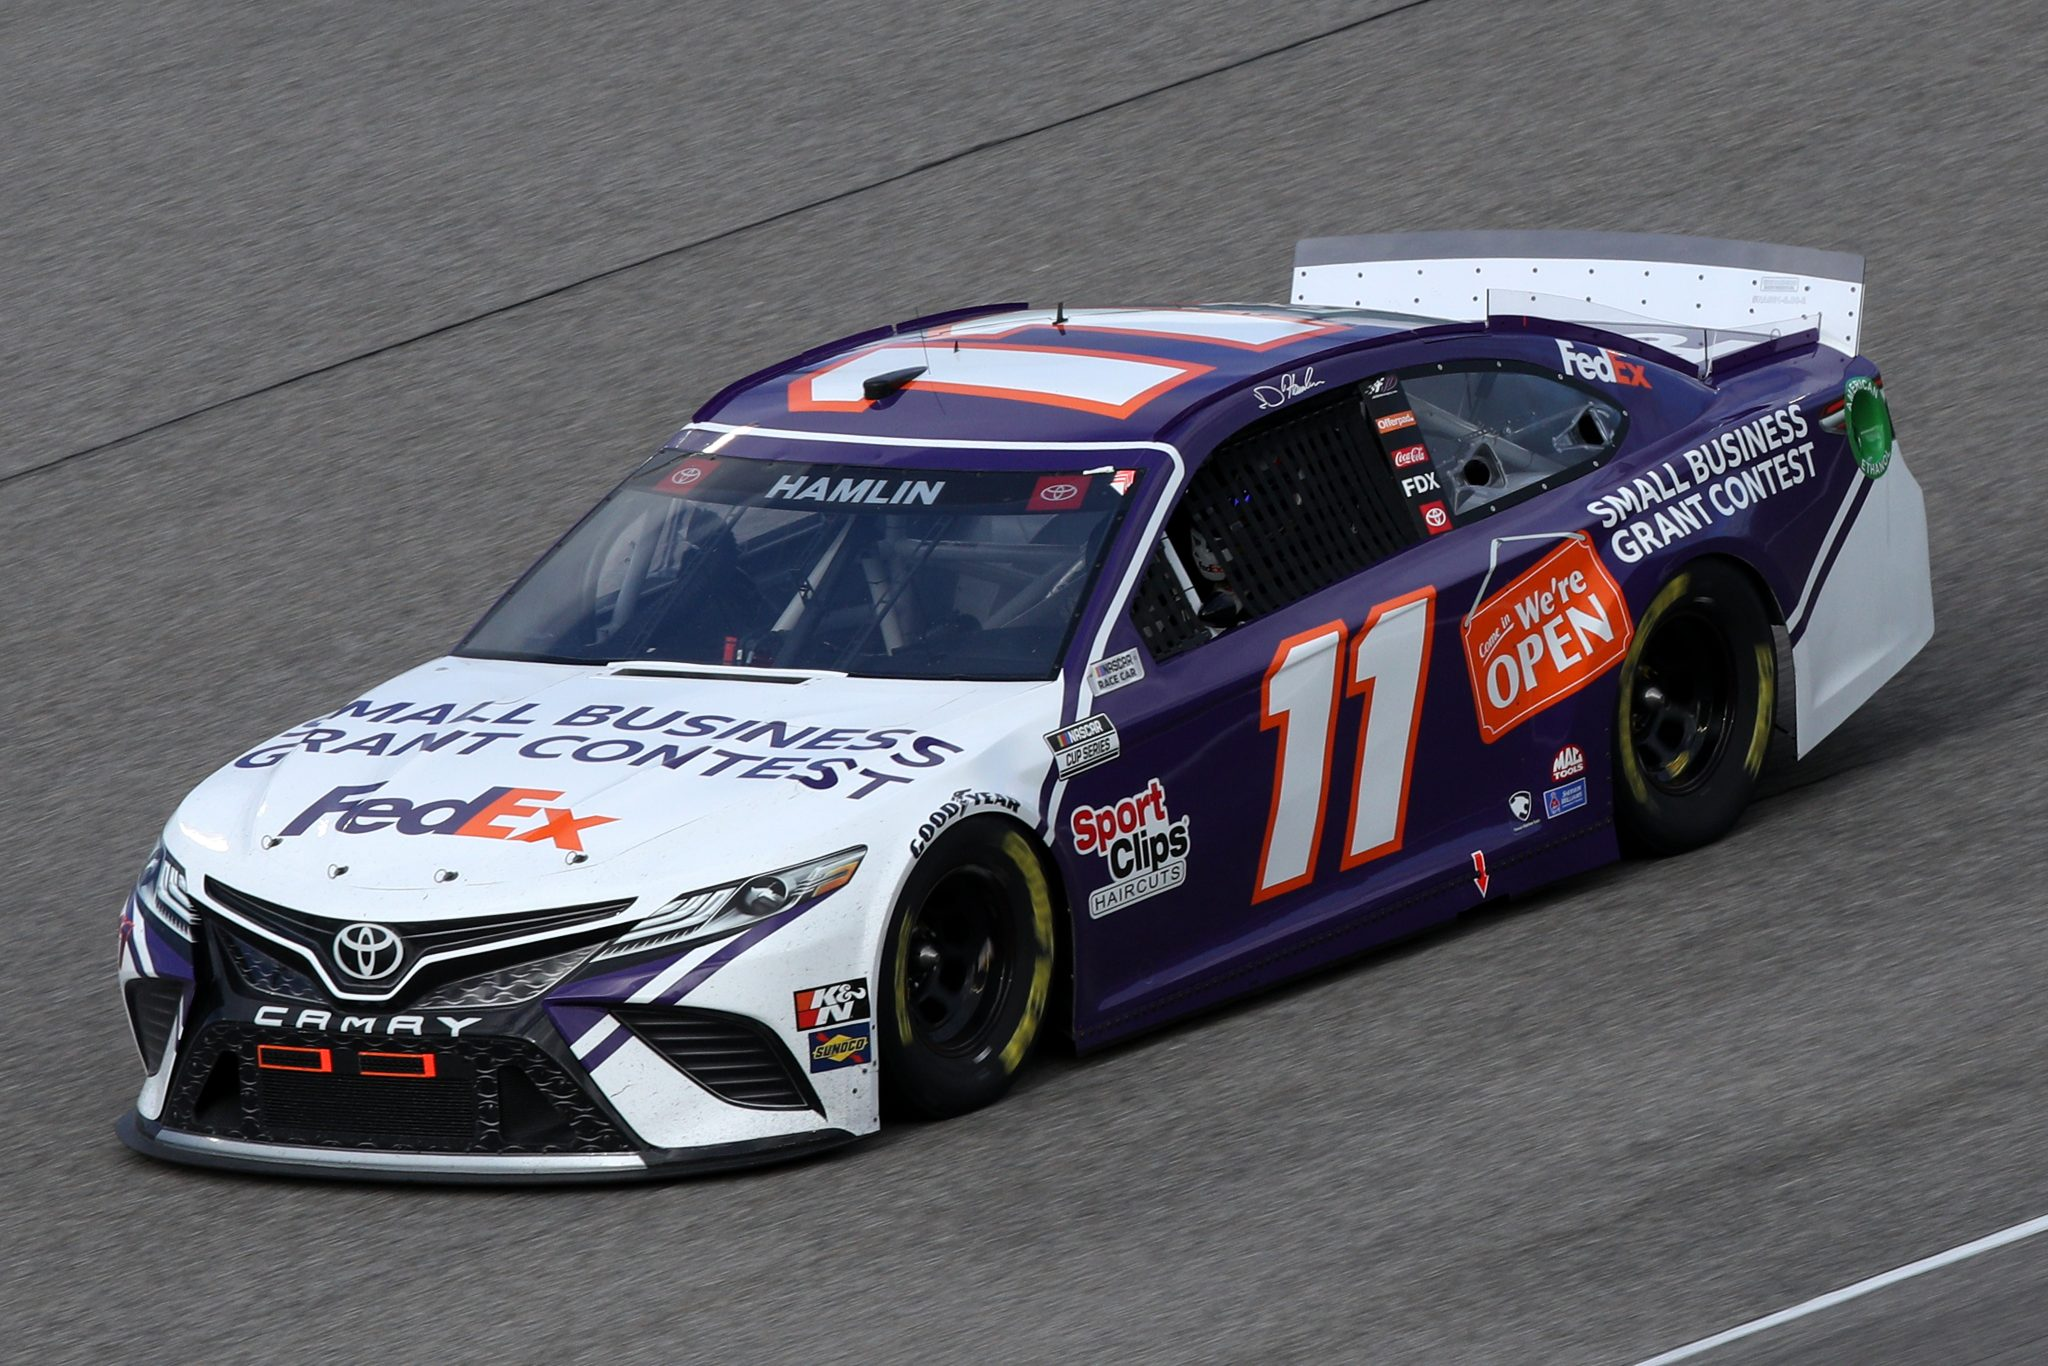 HOMESTEAD, FLORIDA - FEBRUARY 28: Denny Hamlin, driver of the #11 Small Business Grant Constest Toyota, drives during the NASCAR Cup Series Dixie Vodka 400 at Homestead-Miami Speedway on February 28, 2021 in Homestead, Florida. (Photo by Sean Gardner/Getty Images) | Getty Images